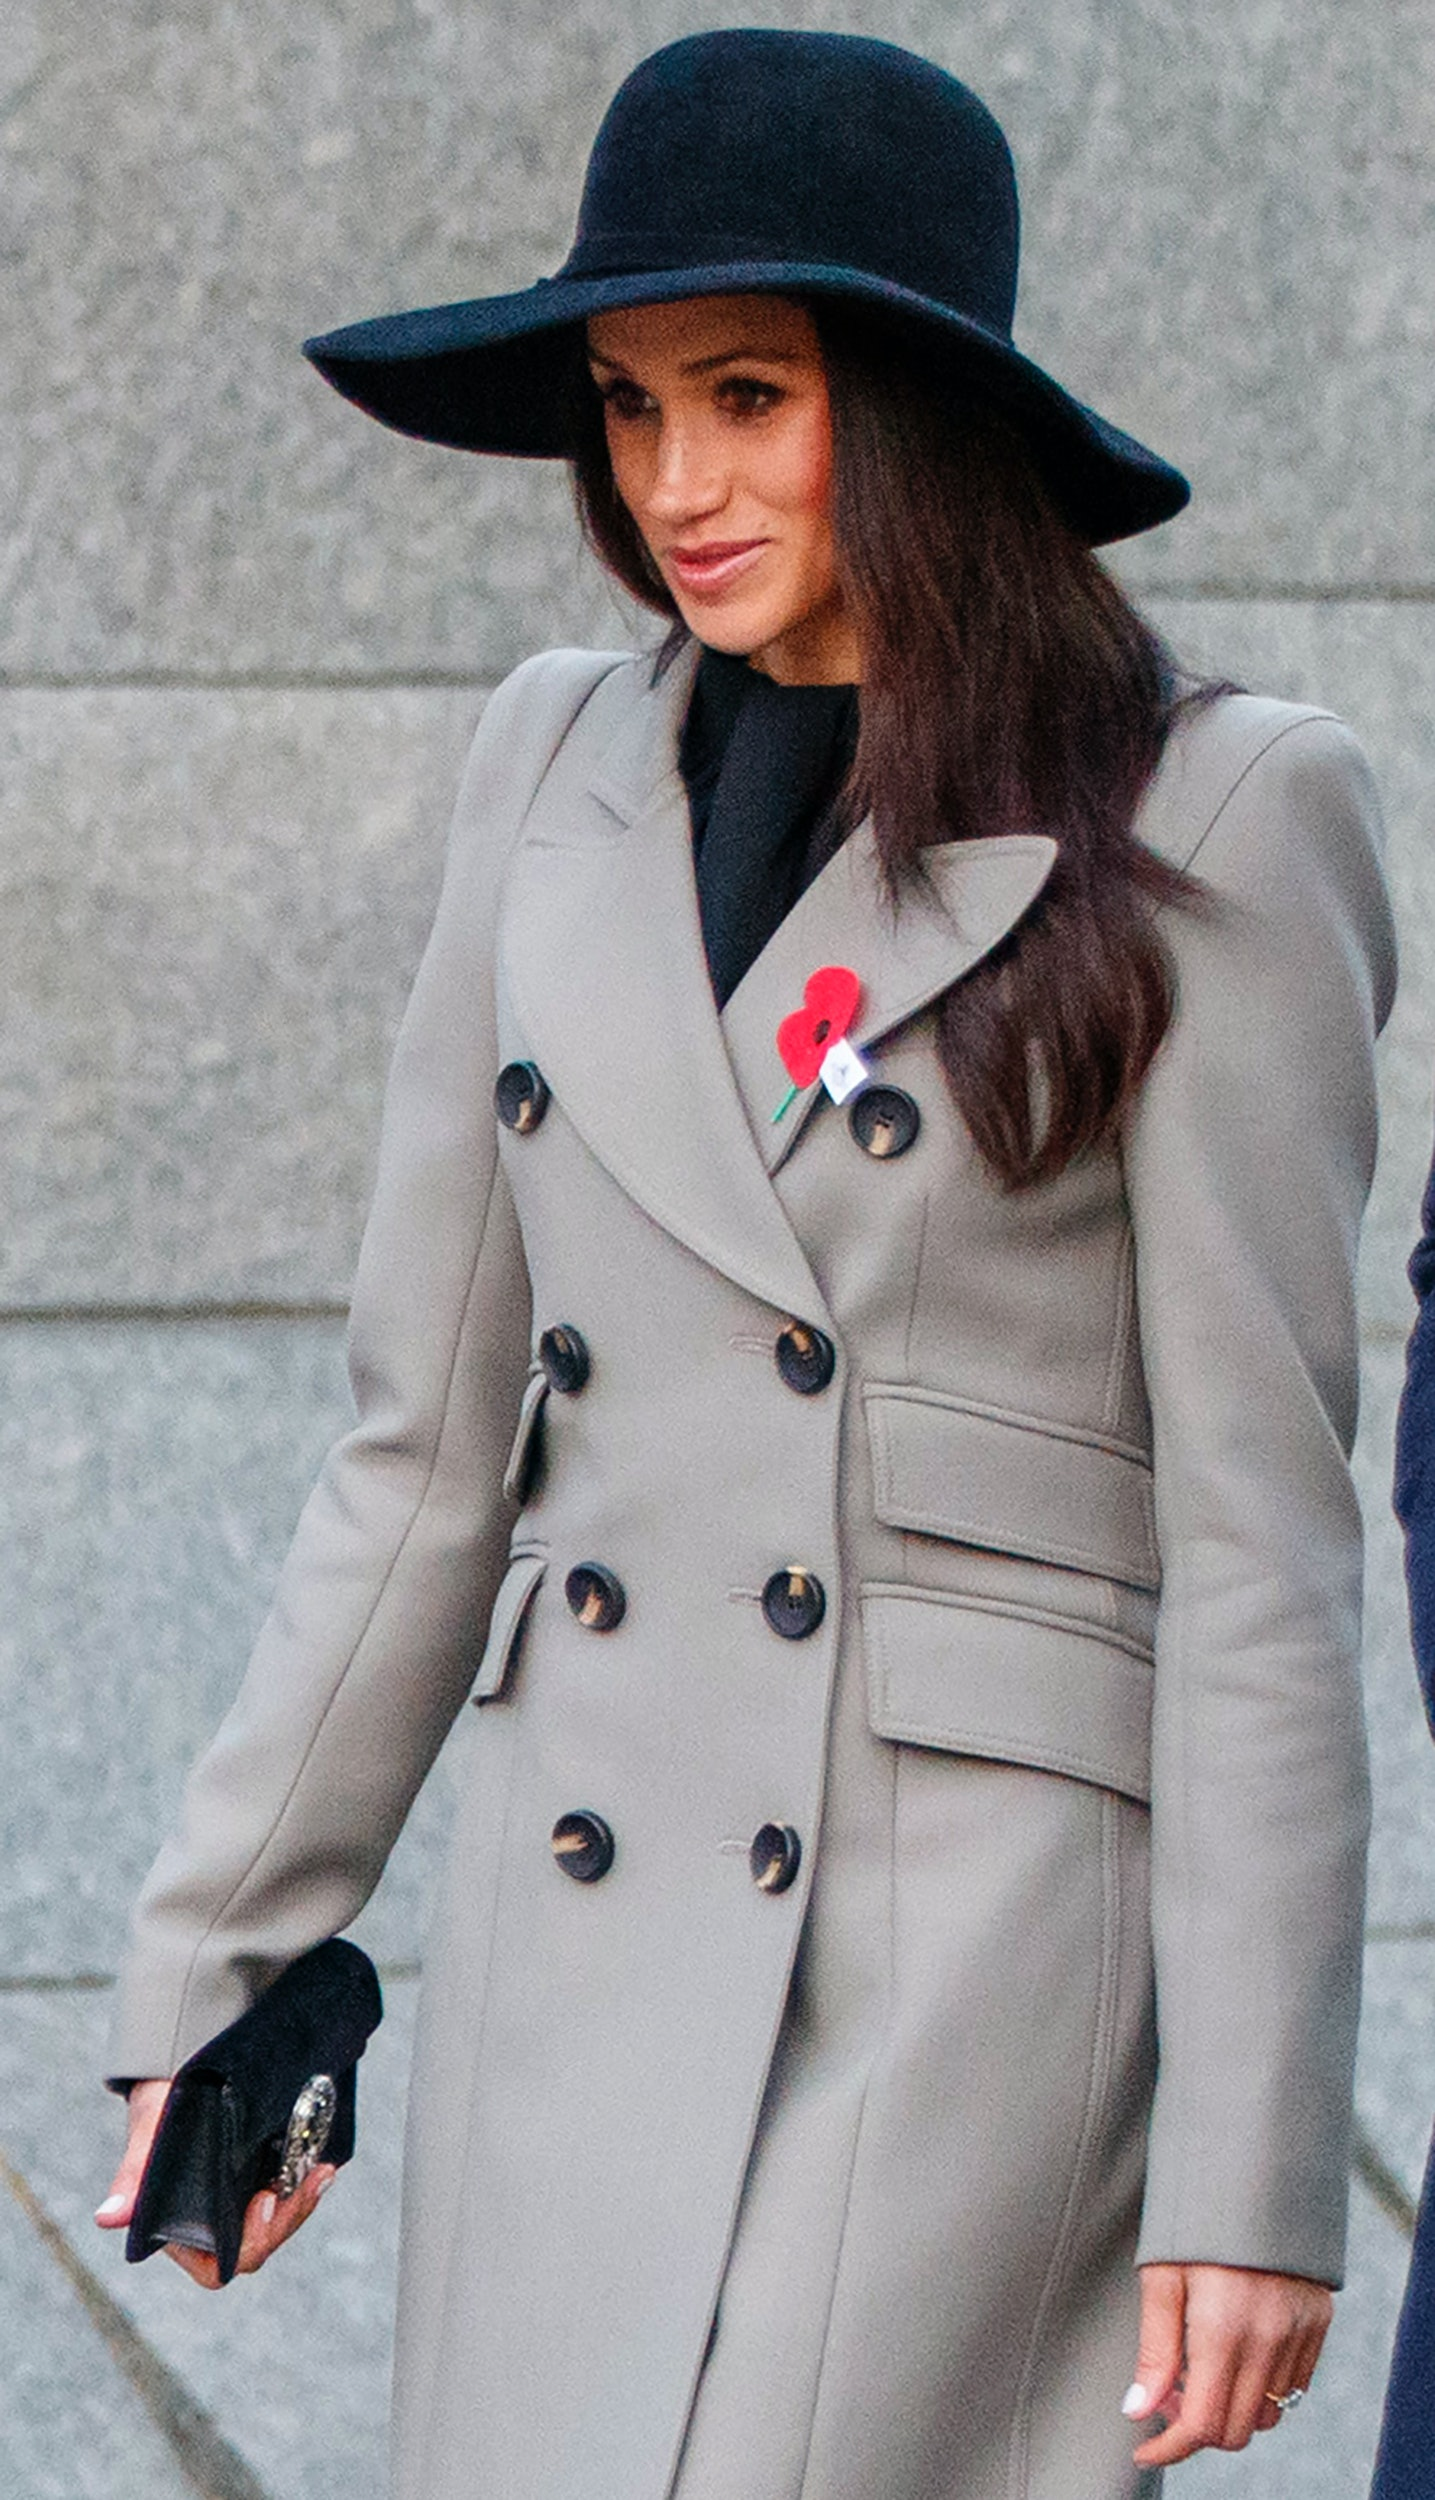 Meghan Markle s Floppy Hat Broke Royal Fashion Rules — And She Looked Good  While Doing It 5f1c7c6a0d81